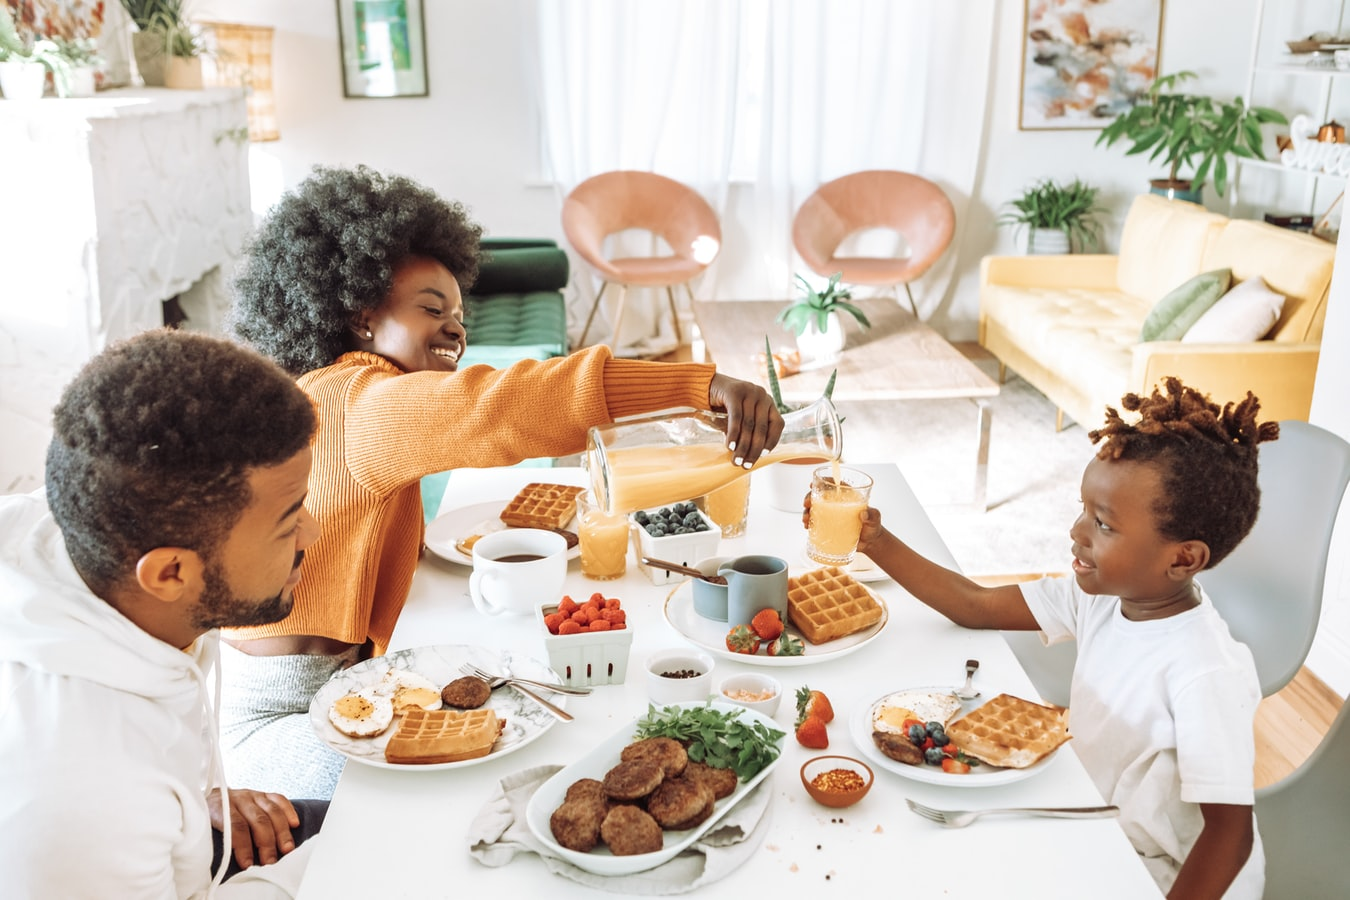 Good table manners make family mealtimes so much nicer for everyone.